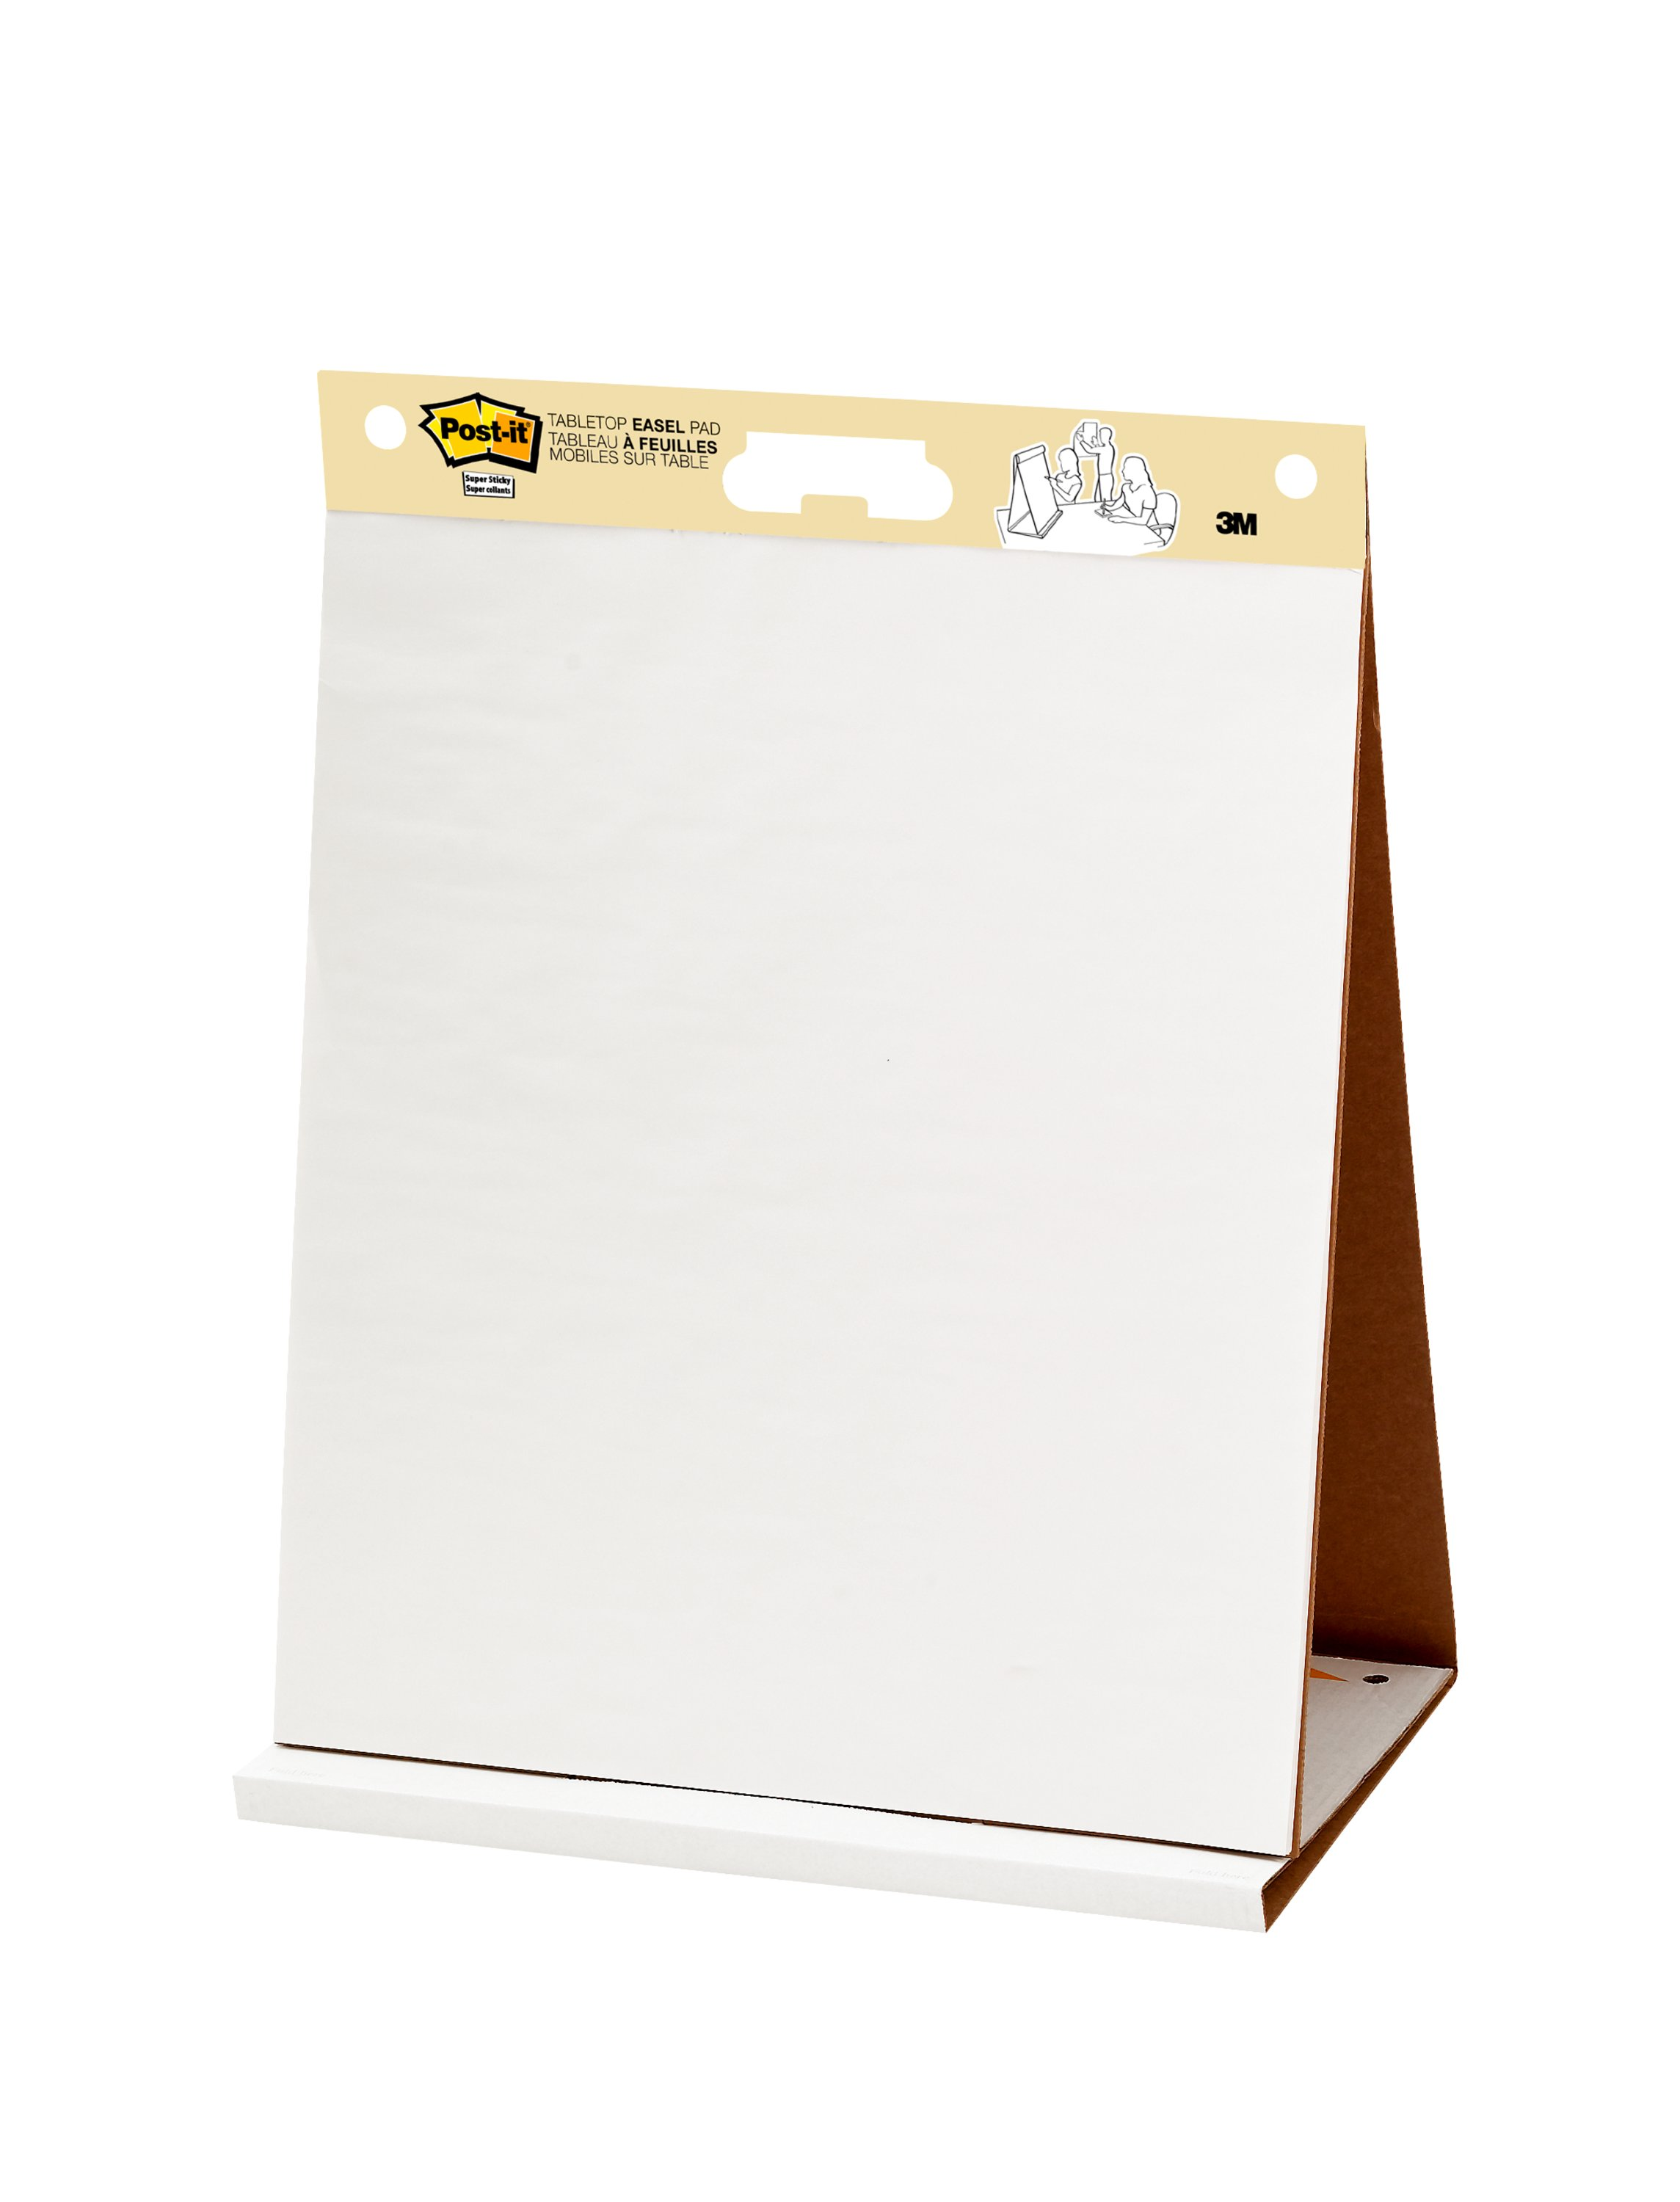 Post-it Super Sticky Portable Tabletop Easel Pad 20x23 Inches 4 Pads